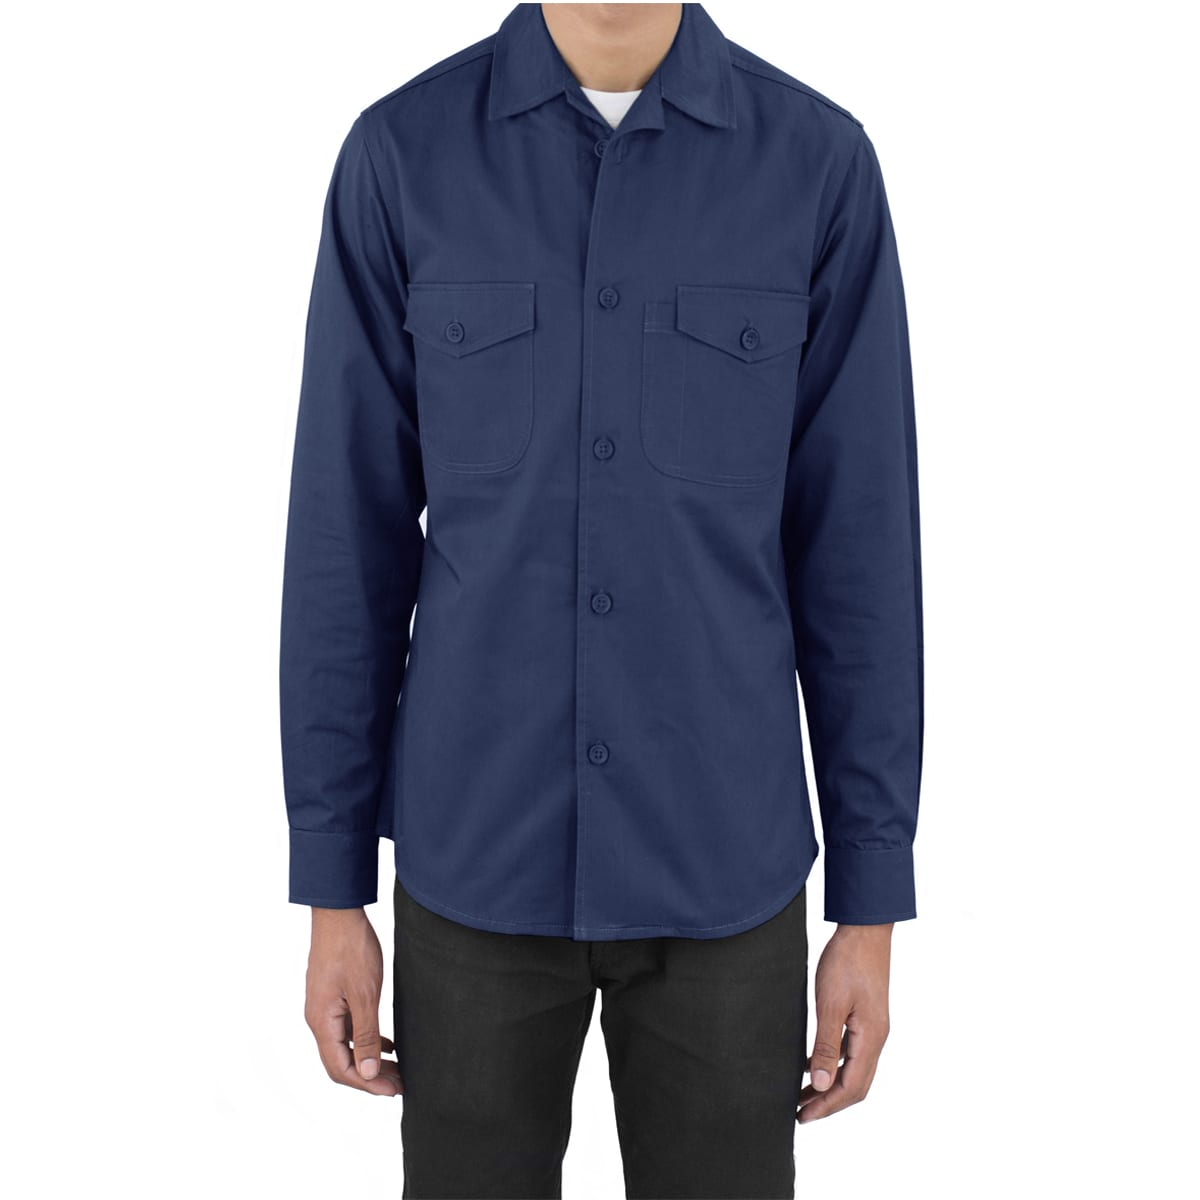 Royal Blue Work Shirt Fine Line Cotton Twill Art Style